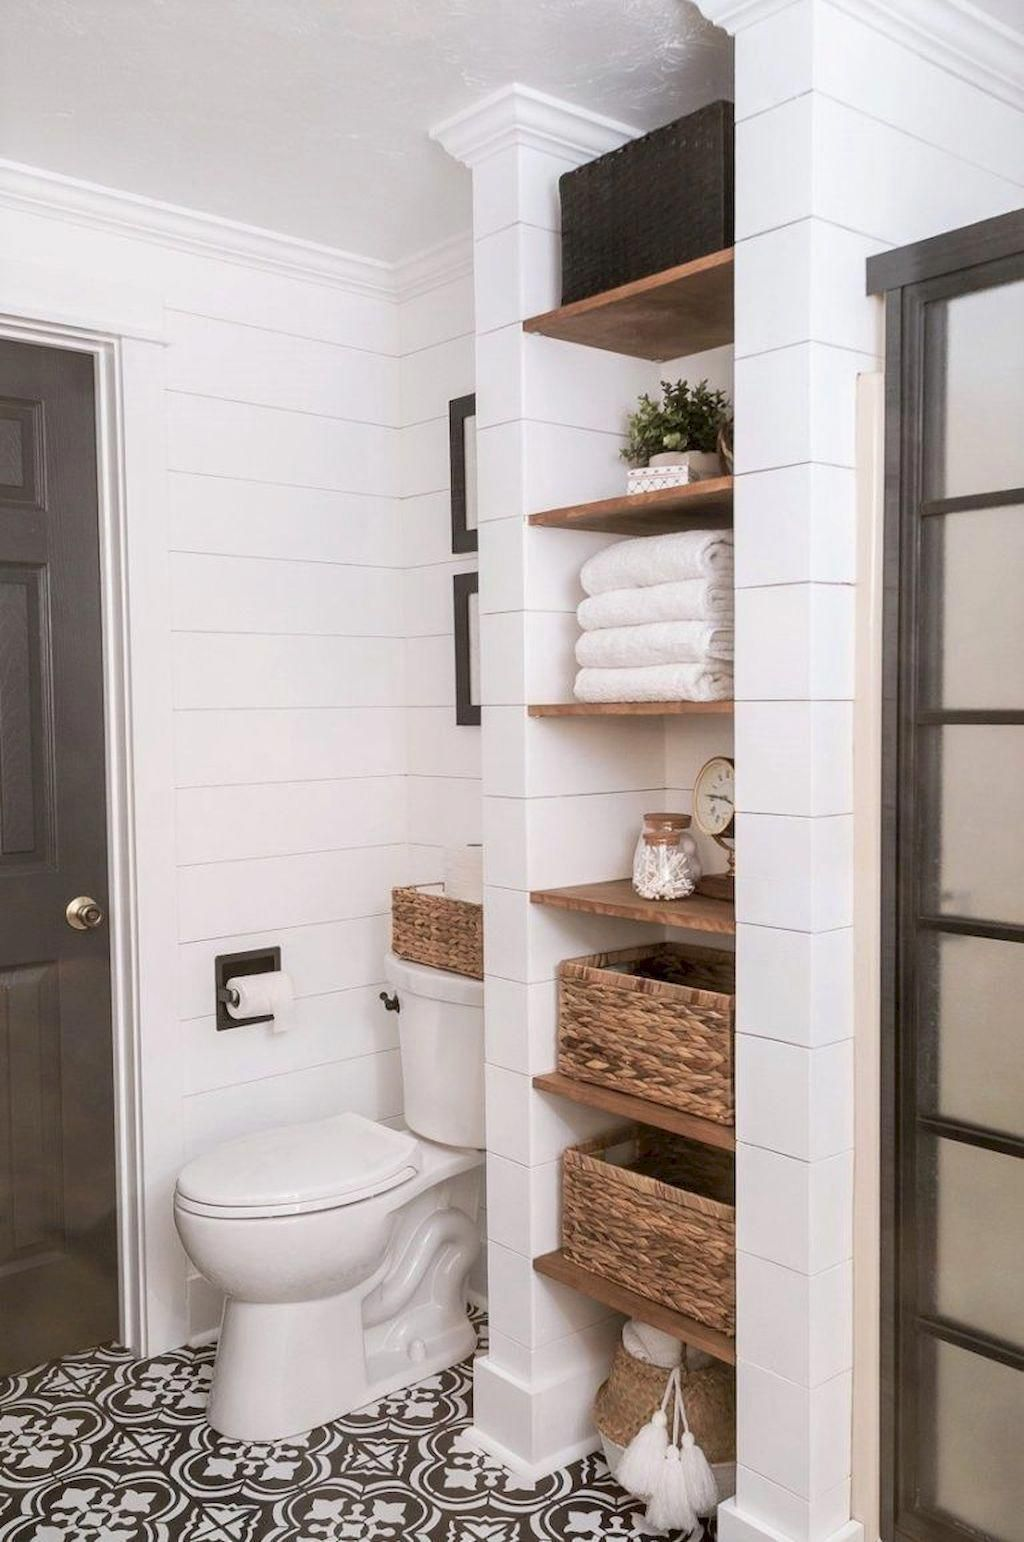 How Much Does A Bathroom Renovation Cost With Images